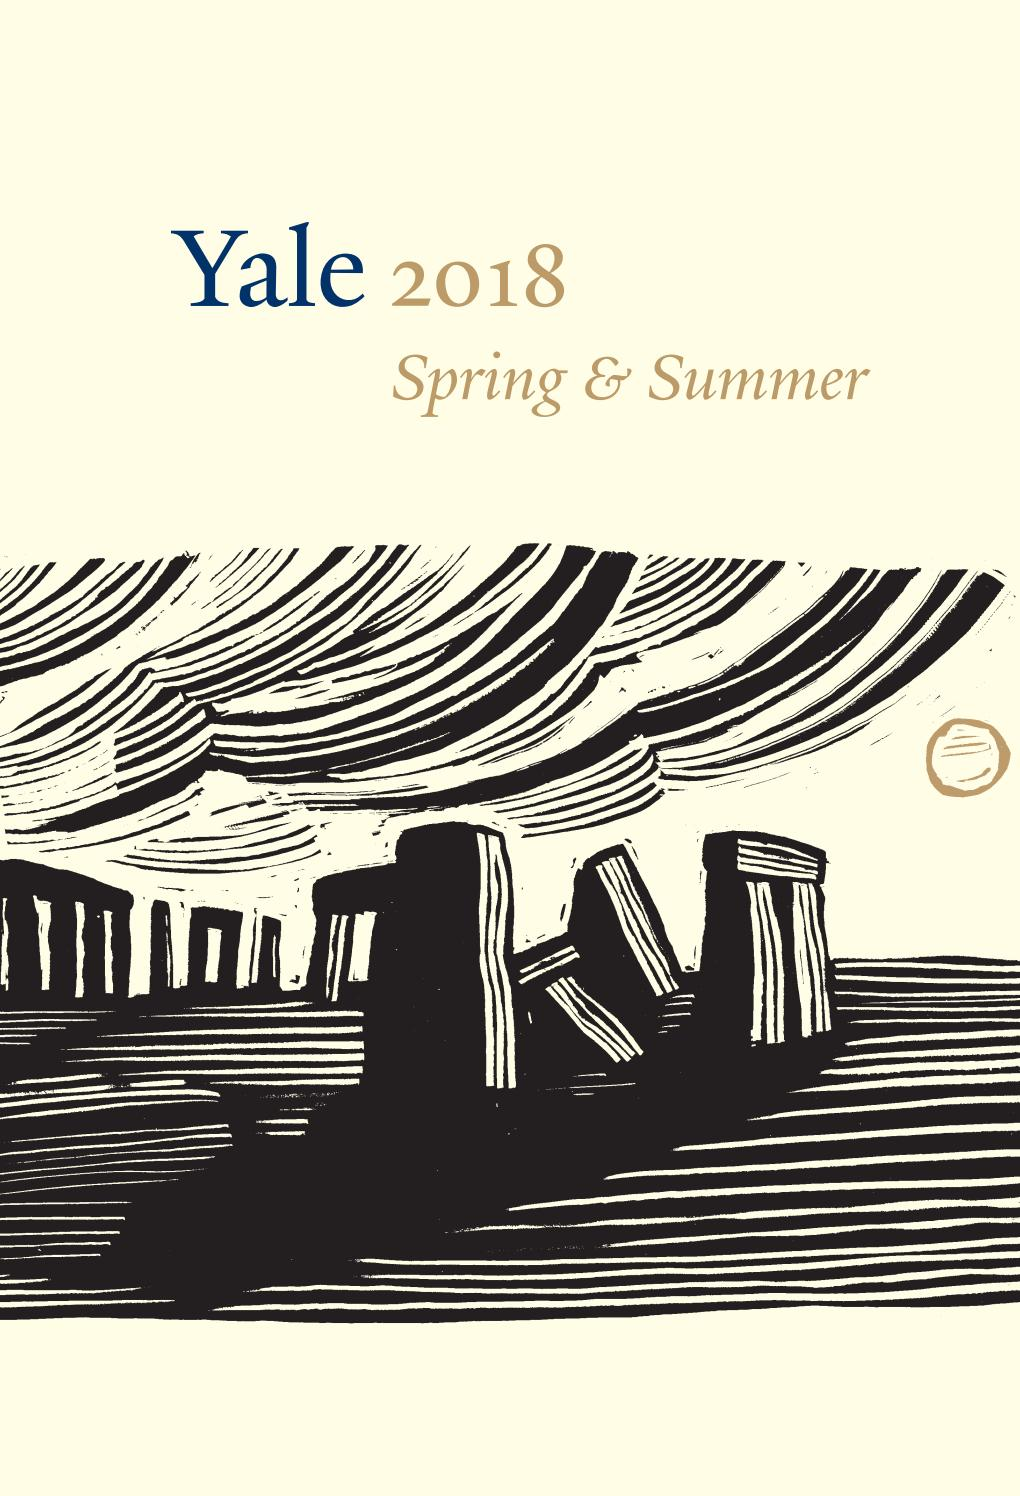 Yale Spring | Summer 2018 Catalogue by Yale University Press, London - issuu